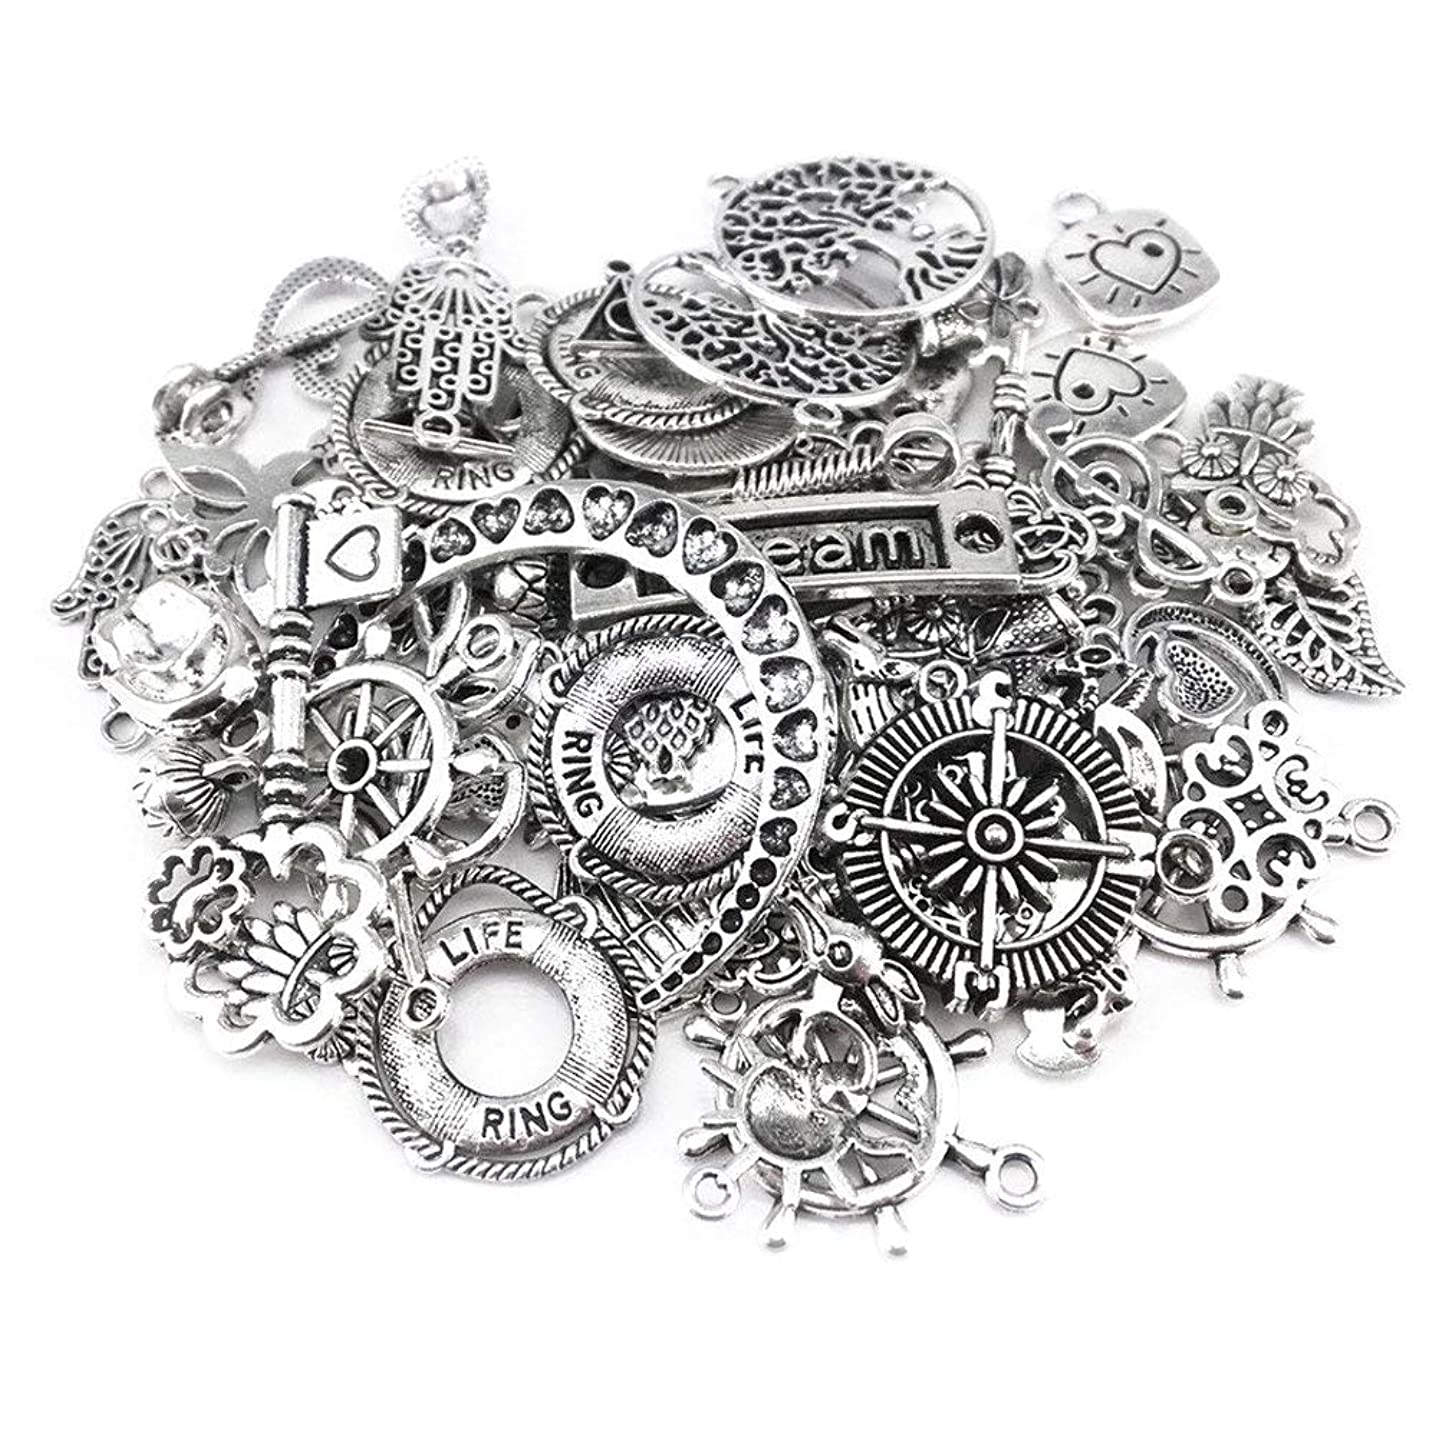 Yueton 100 Gram (Approx 80pcs) Assorted DIY Antique Charms Pendant for Crafting, Jewelry Making Accessory (Silver)